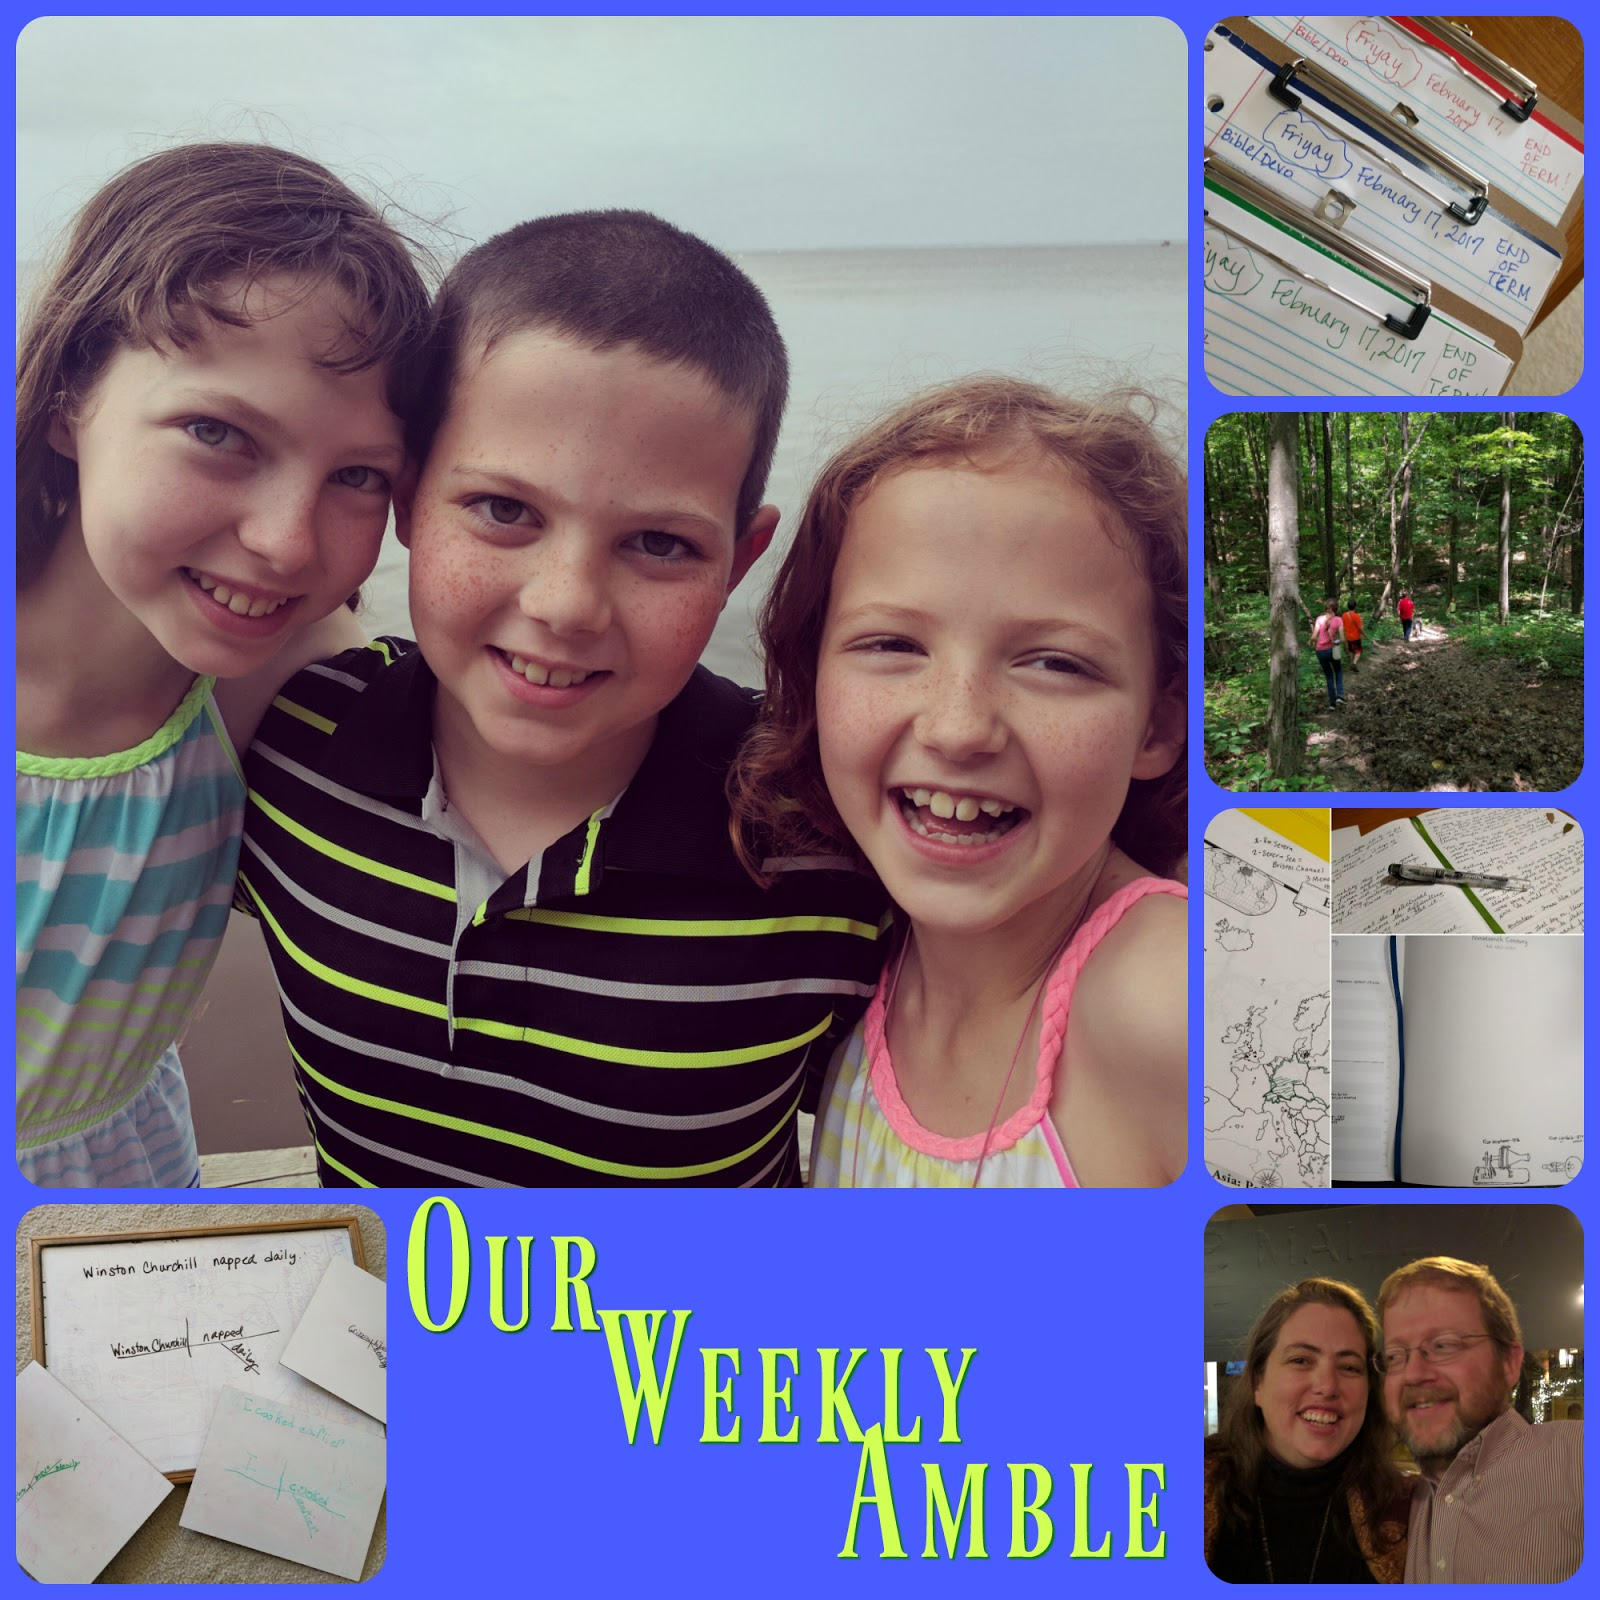 Our Weekly Amble for August 21-25, 2017